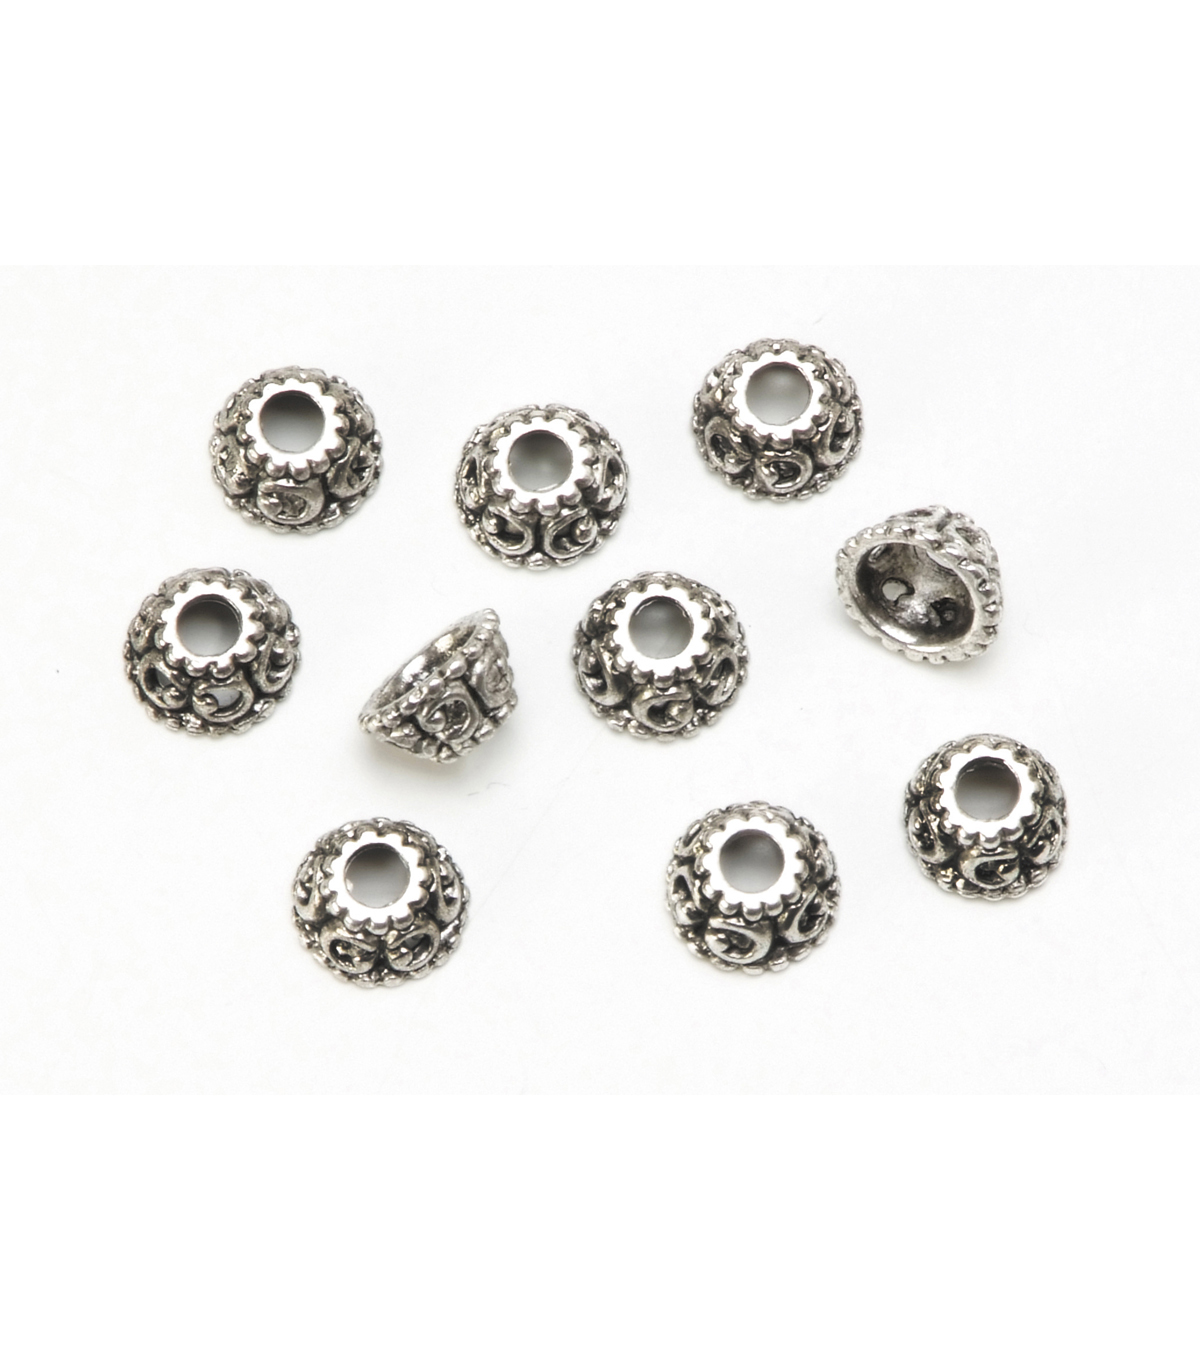 Cast Metal Spacer Beads, Swirl Endcaps, Antique Silver